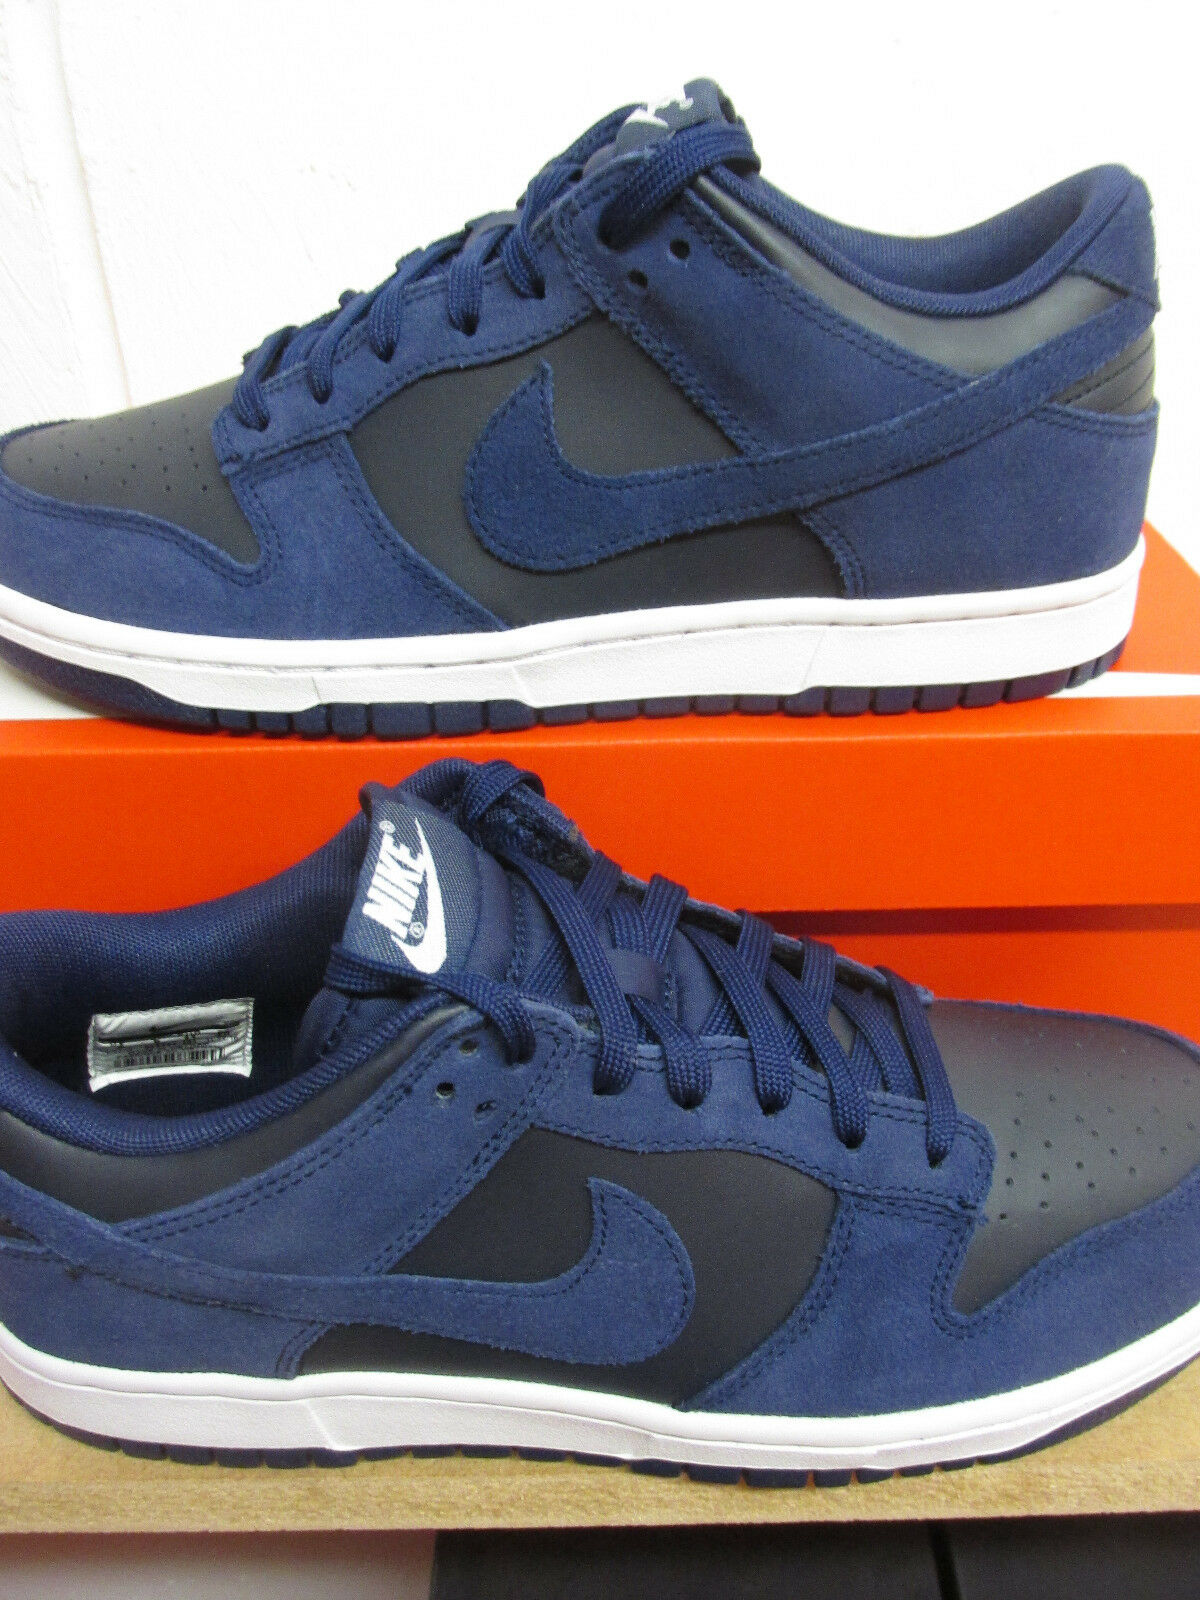 Nike Nike Nike Dunk Low Hommes Trainers 904234 401 Baskets Chaussures 148b63